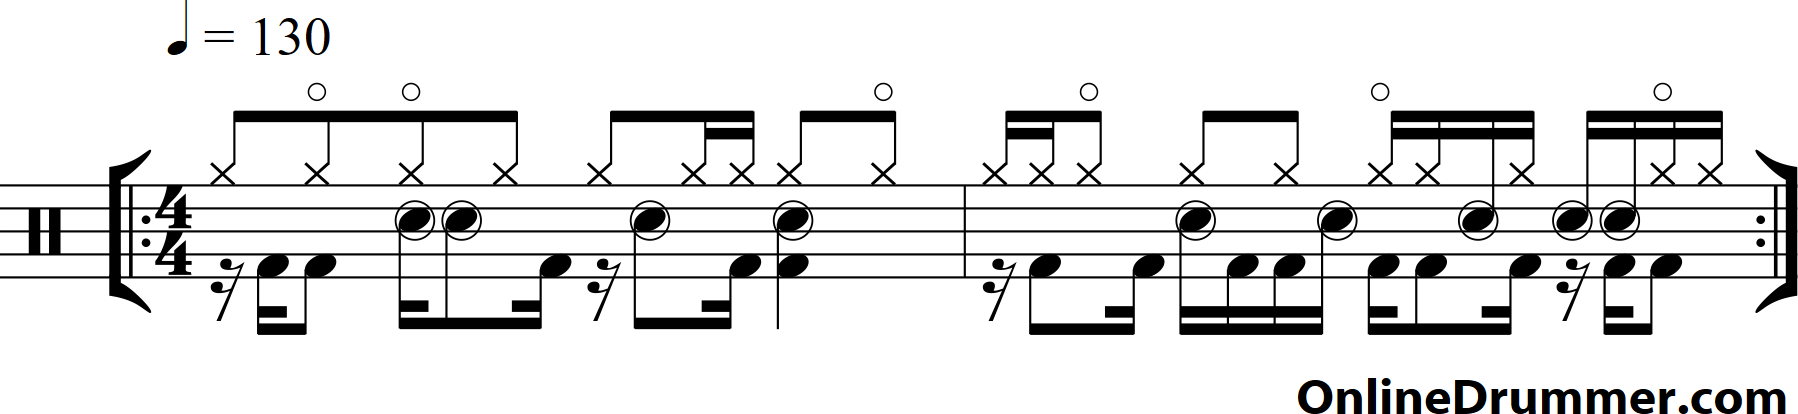 Drum Lessons - Rock Drumming Beats Three (w/ eighth notes)